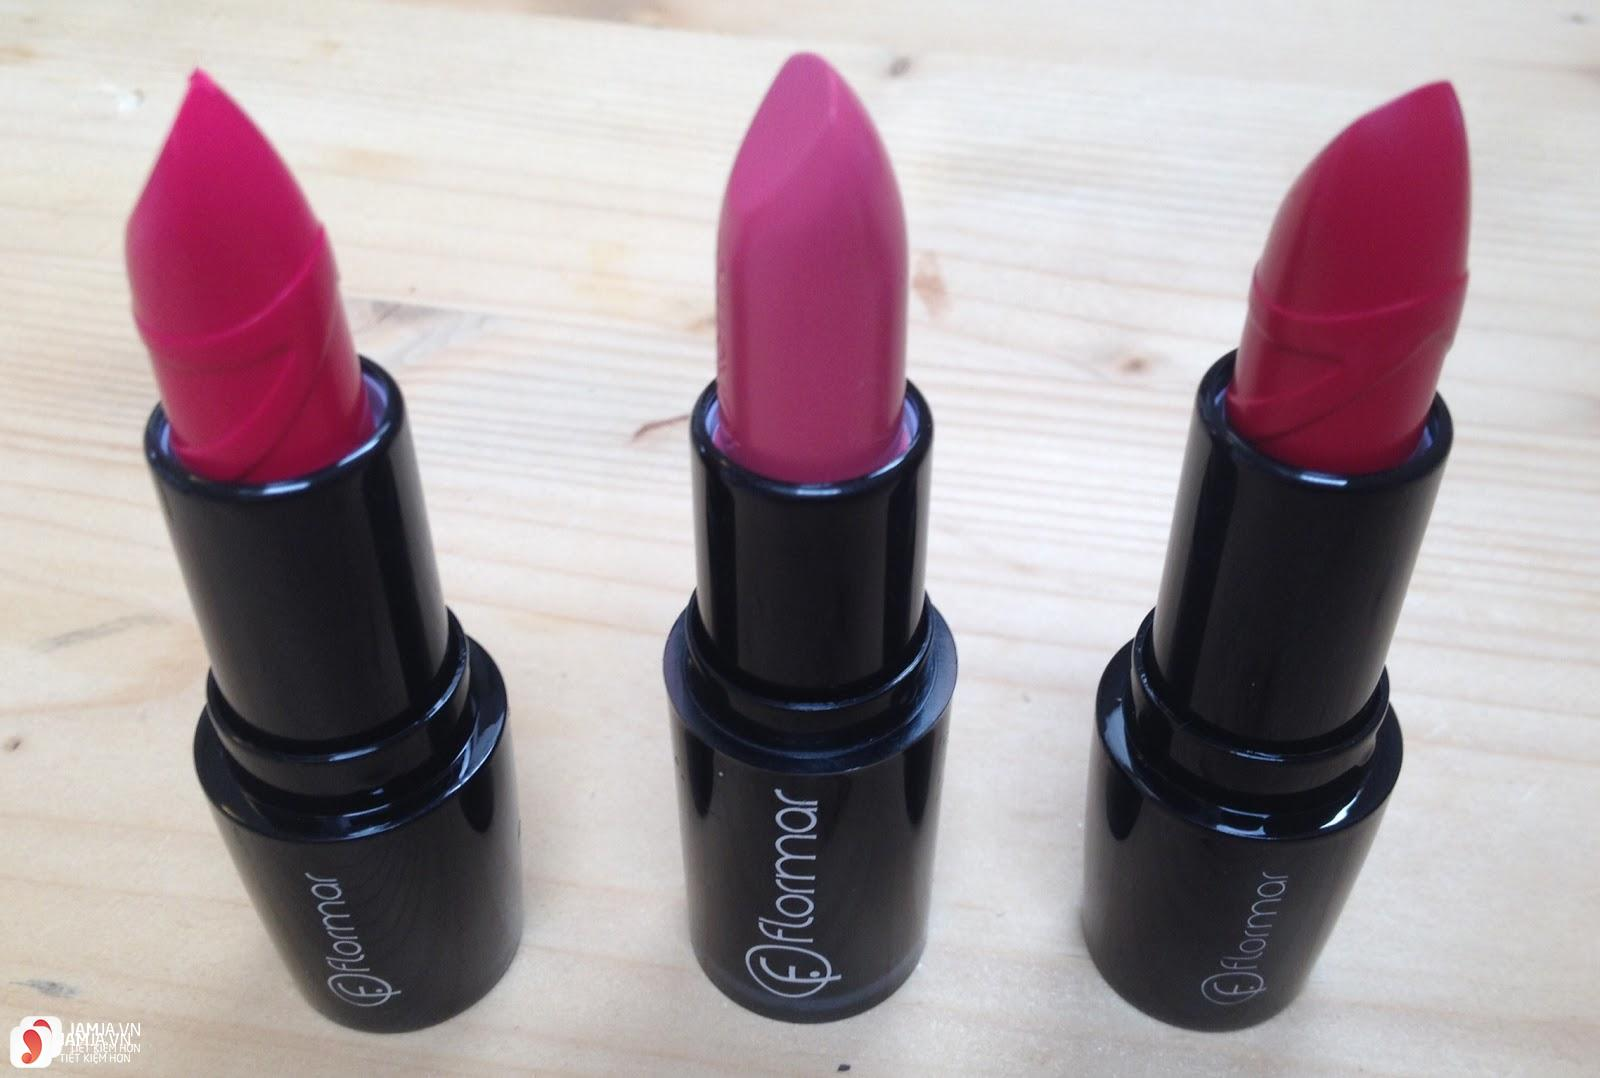 Review dòng son Flormar Long Wearing Lipstick 3